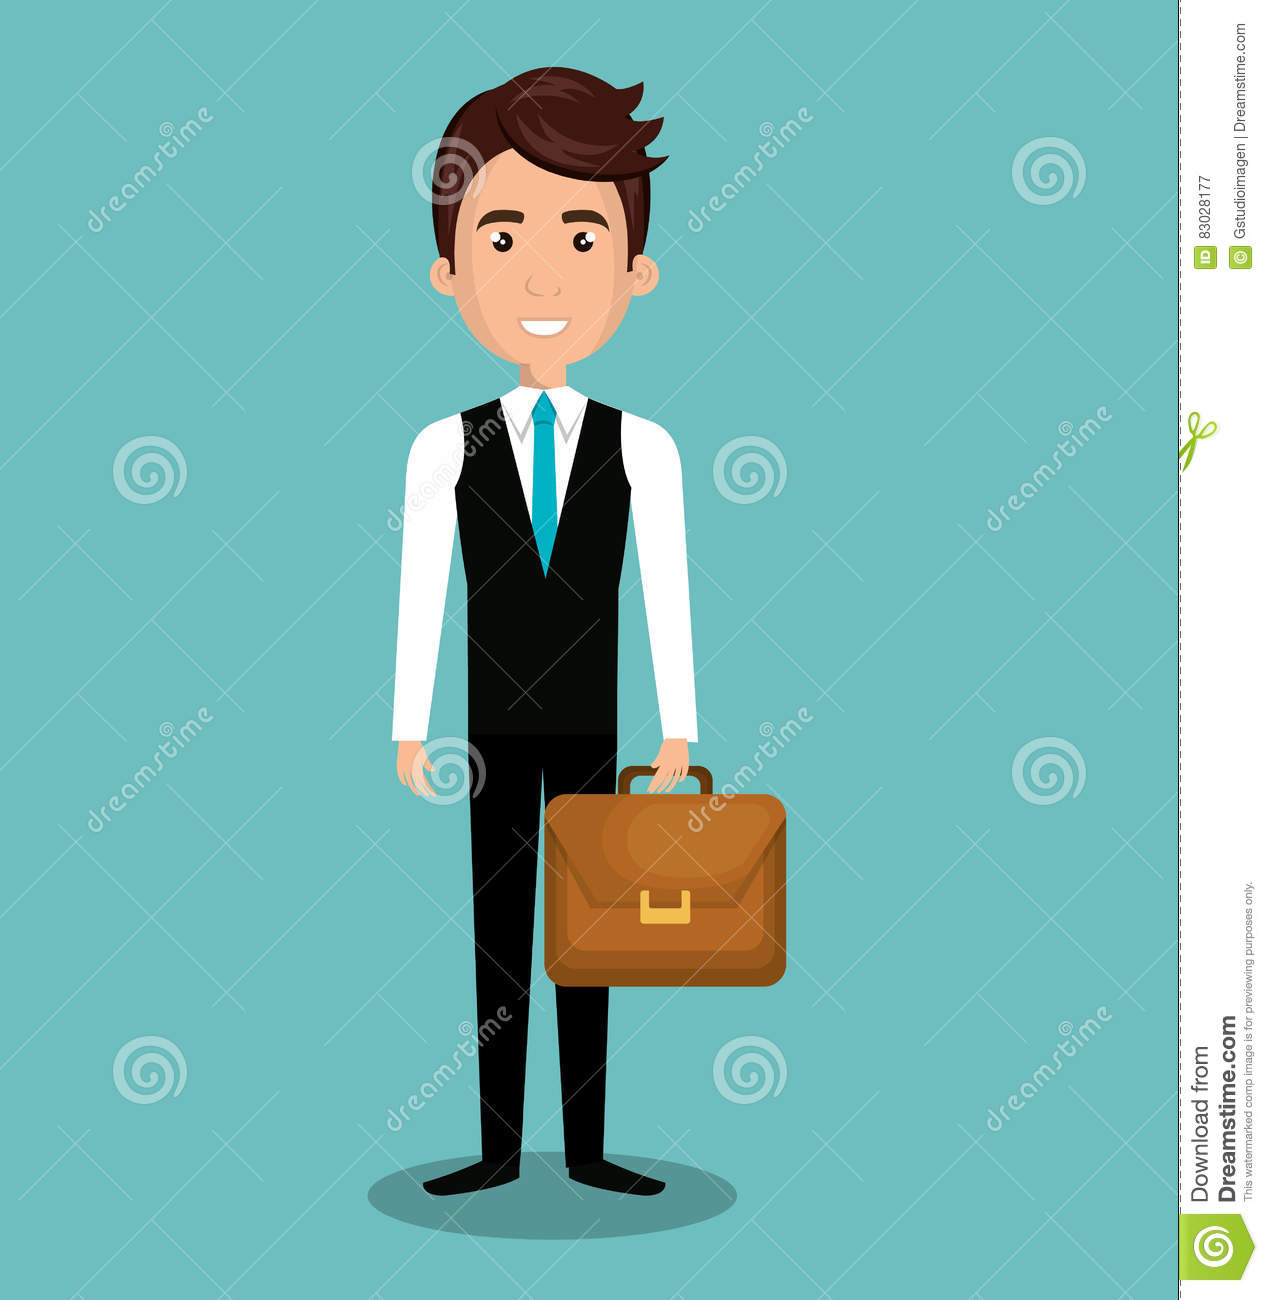 Executive Cartoon: Cartoon Man Executive Business Briefcase Isolated Stock